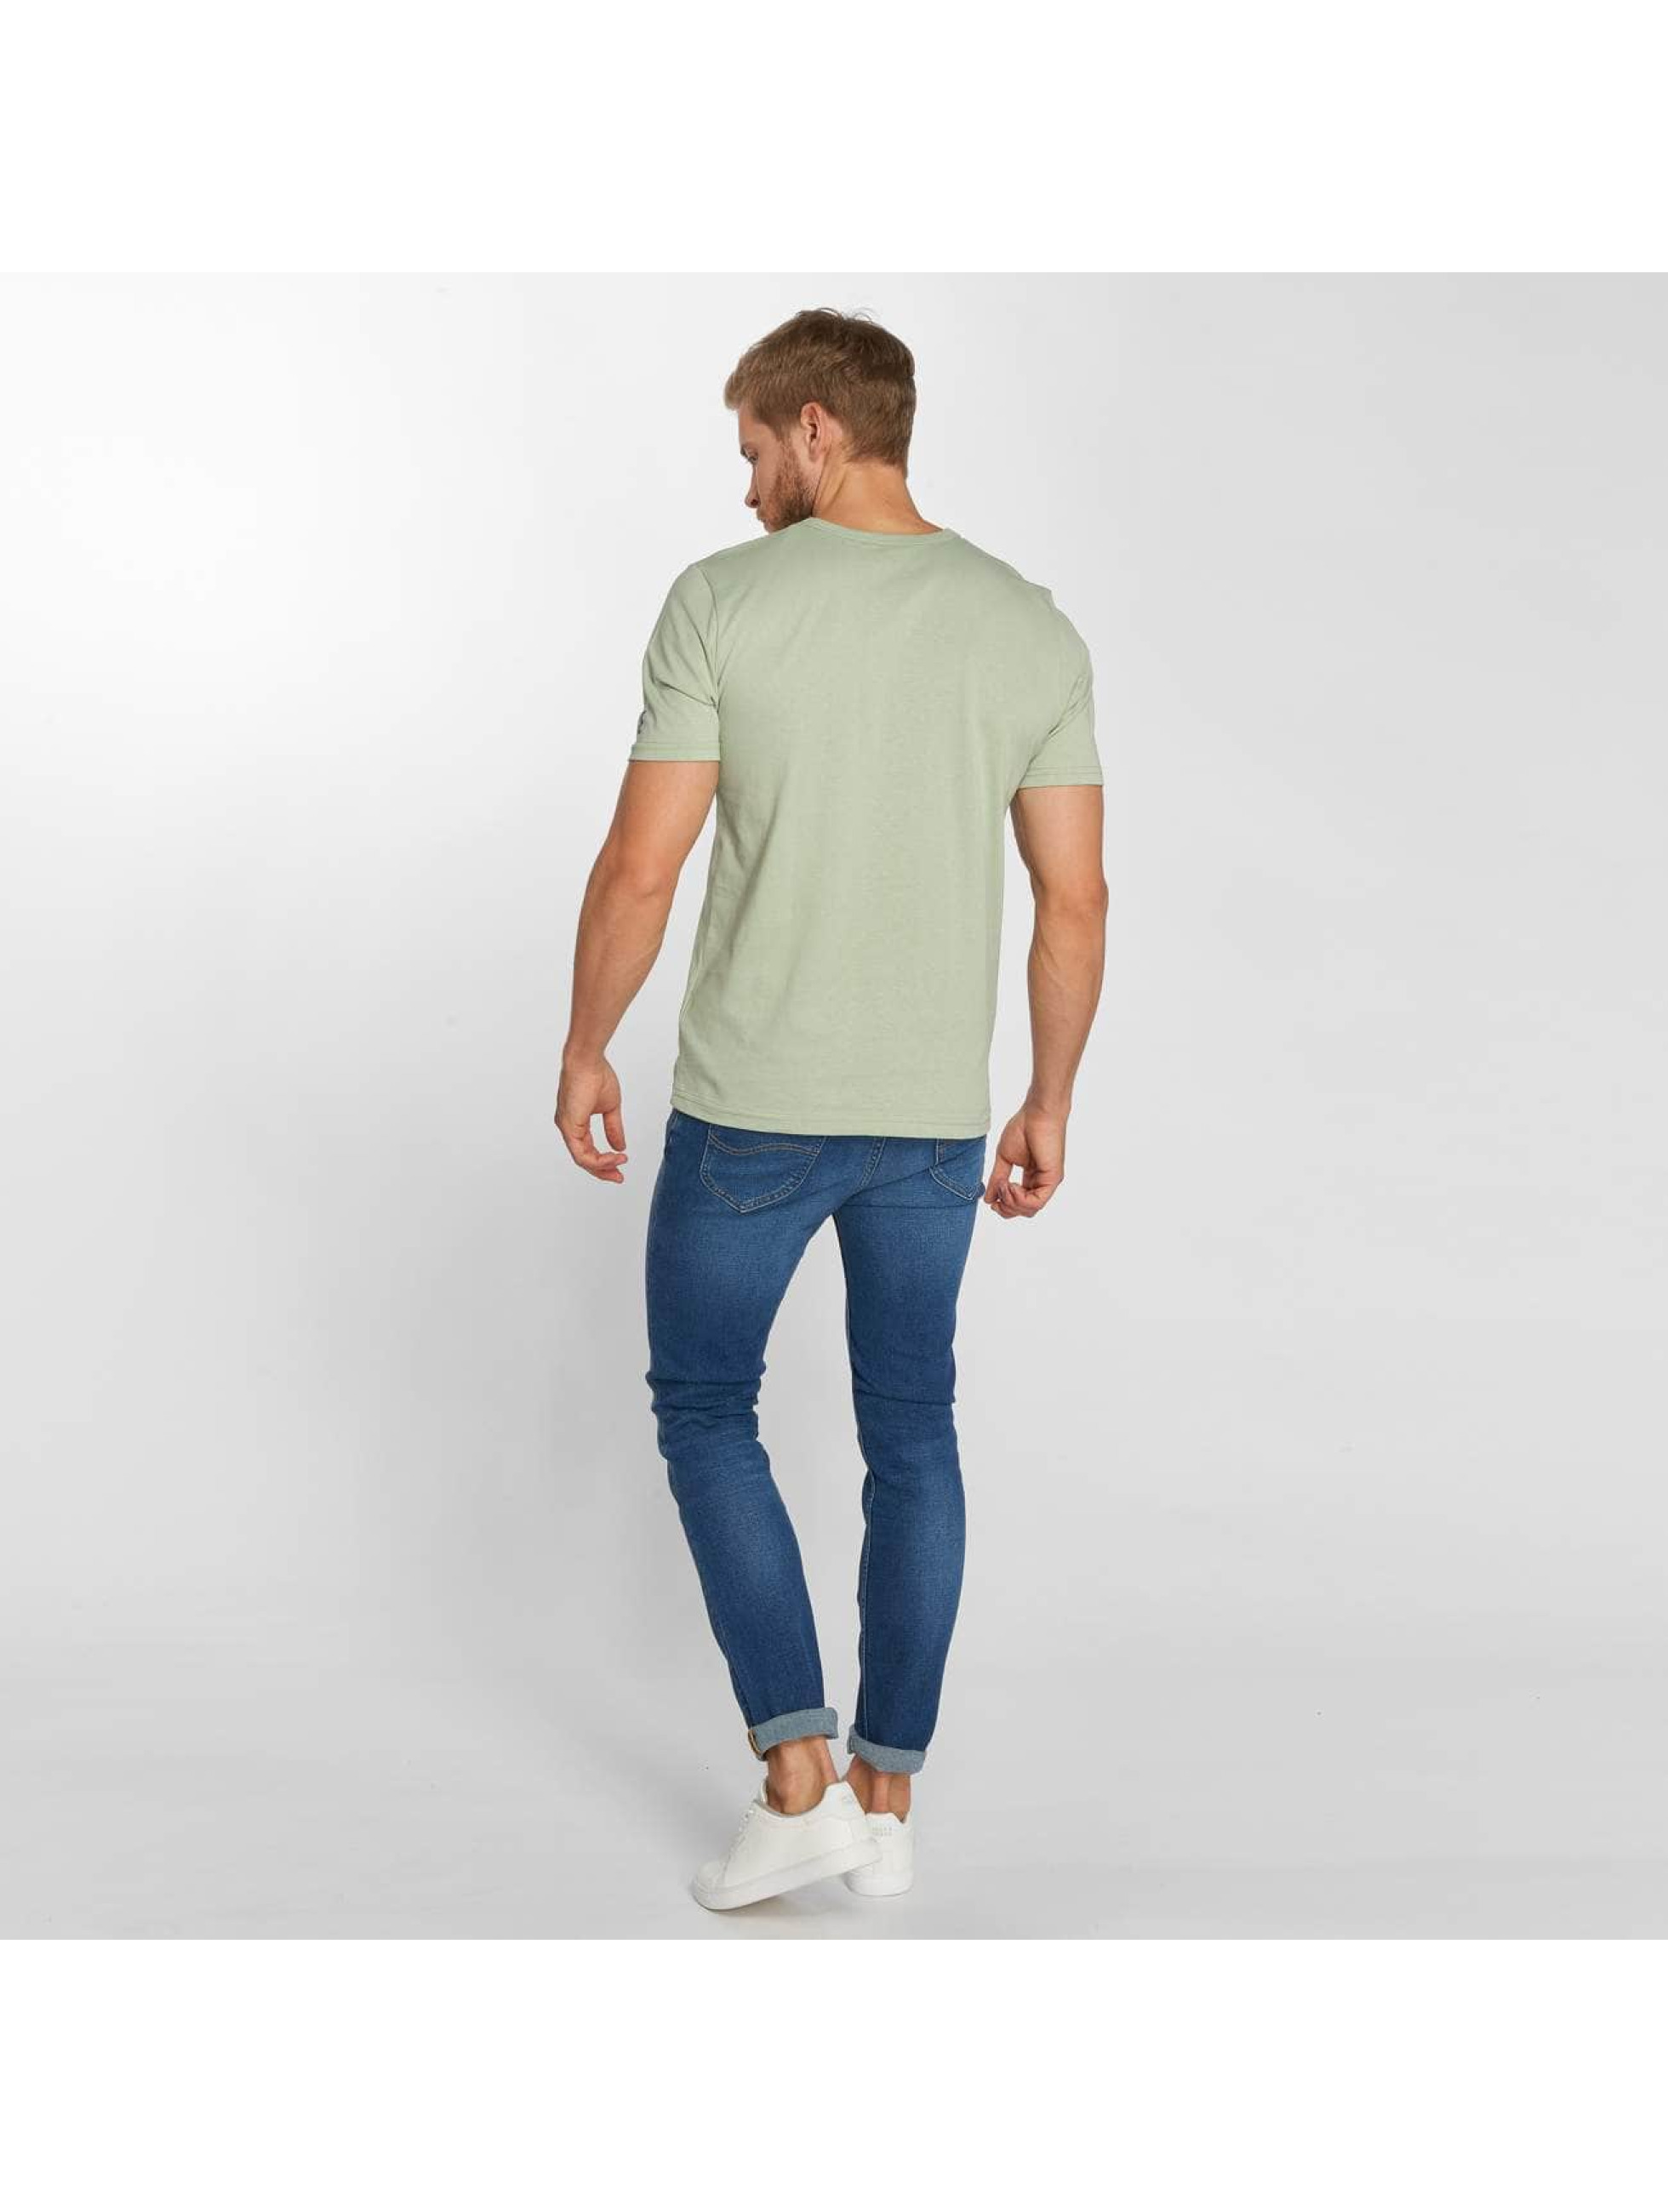 Lee T-Shirt Pocket vert